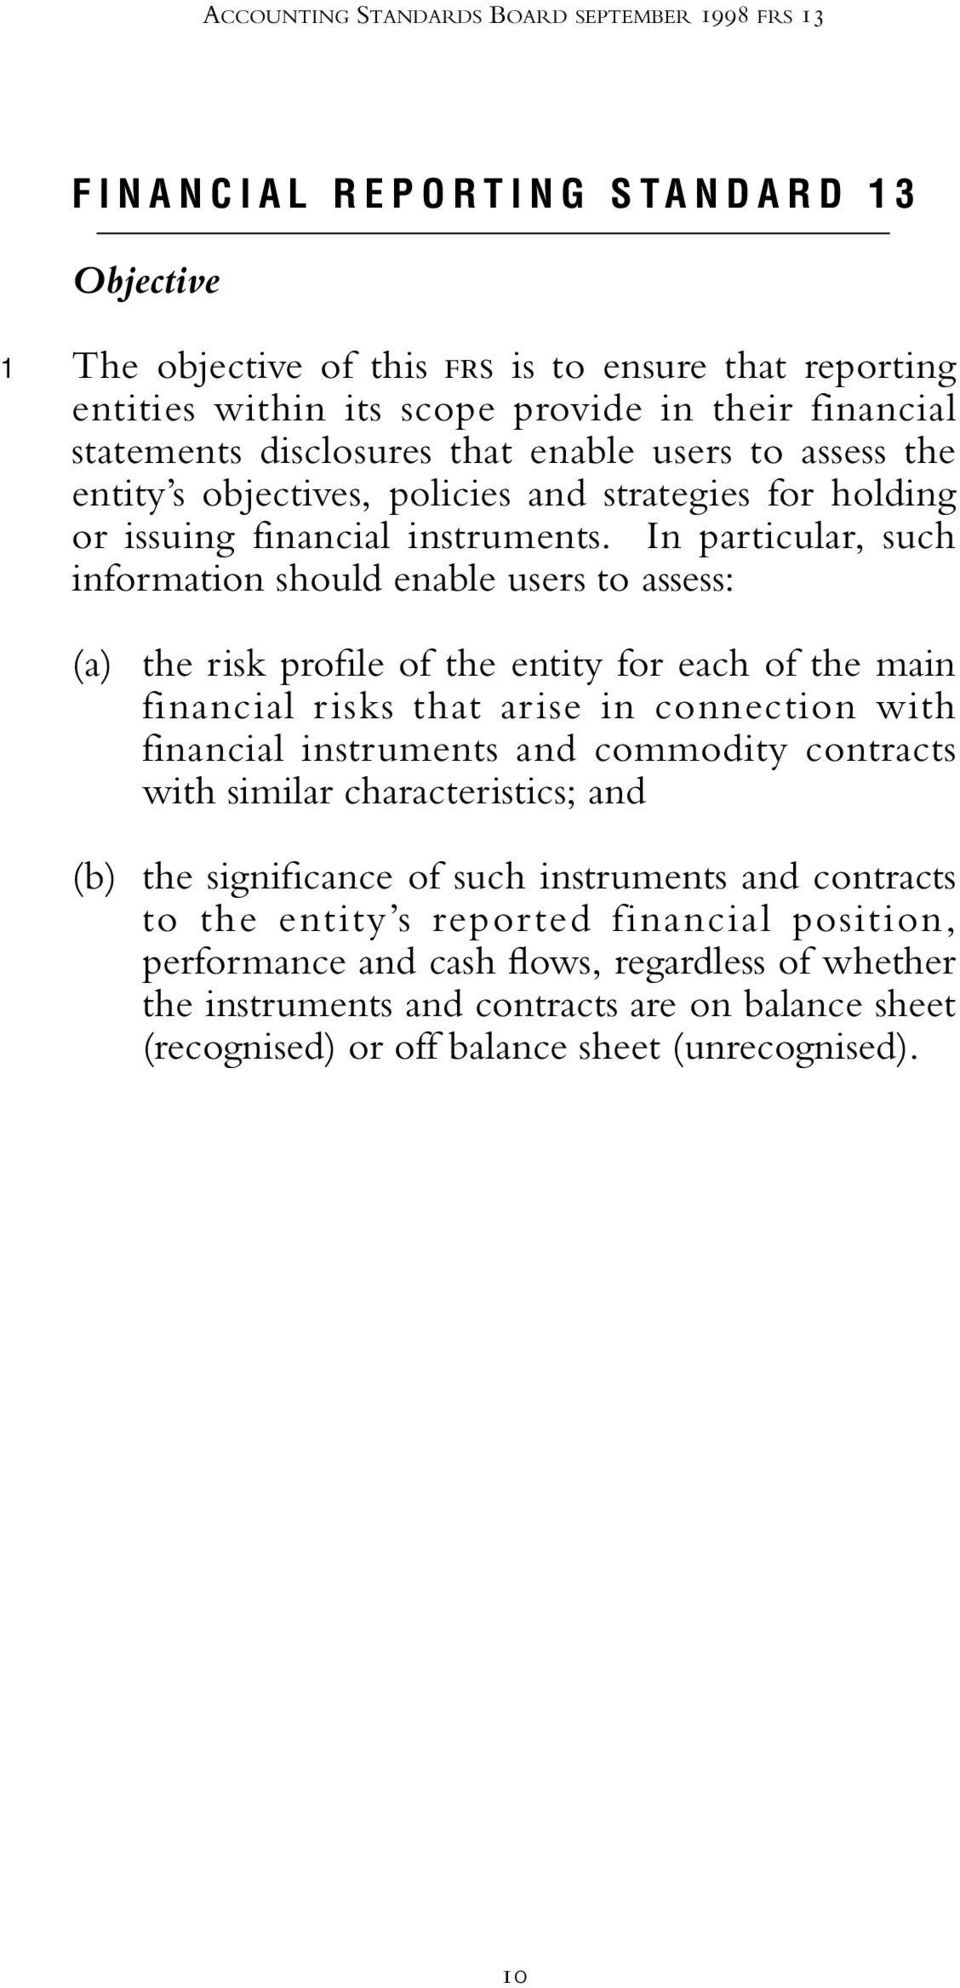 In particular, such information should enable users to assess: (a) the risk profile of the entity for each of the main financial risks that arise in connection with financial instruments and